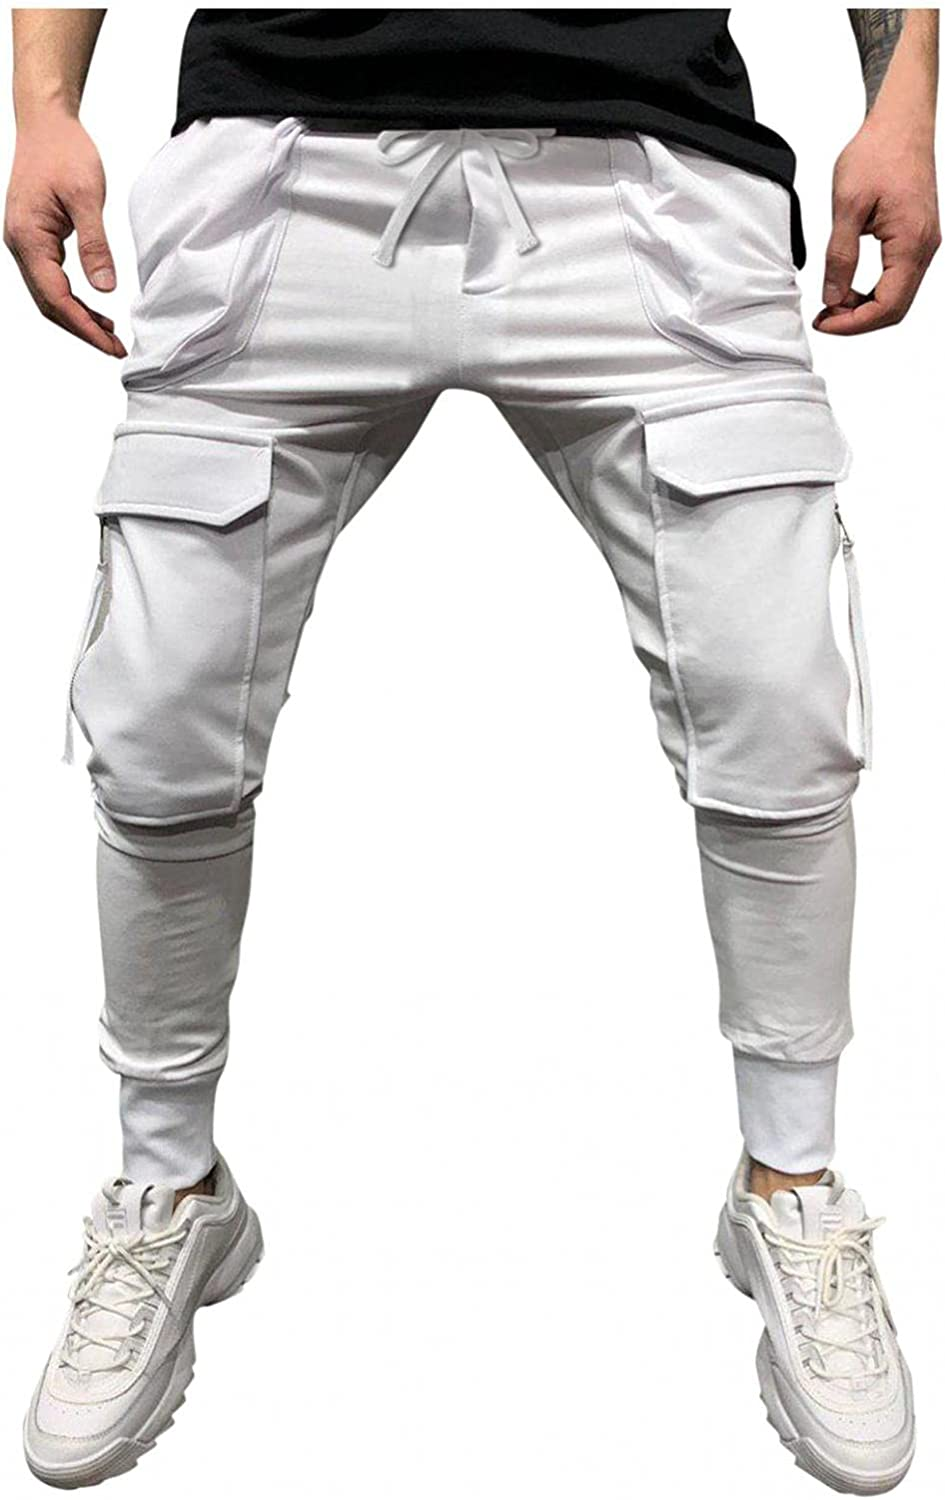 Huangse Men's Casual Sports Pants Workout Sport Sweatpants with Zipper Pockets Personality Hip-Hop Fitness Long Pants